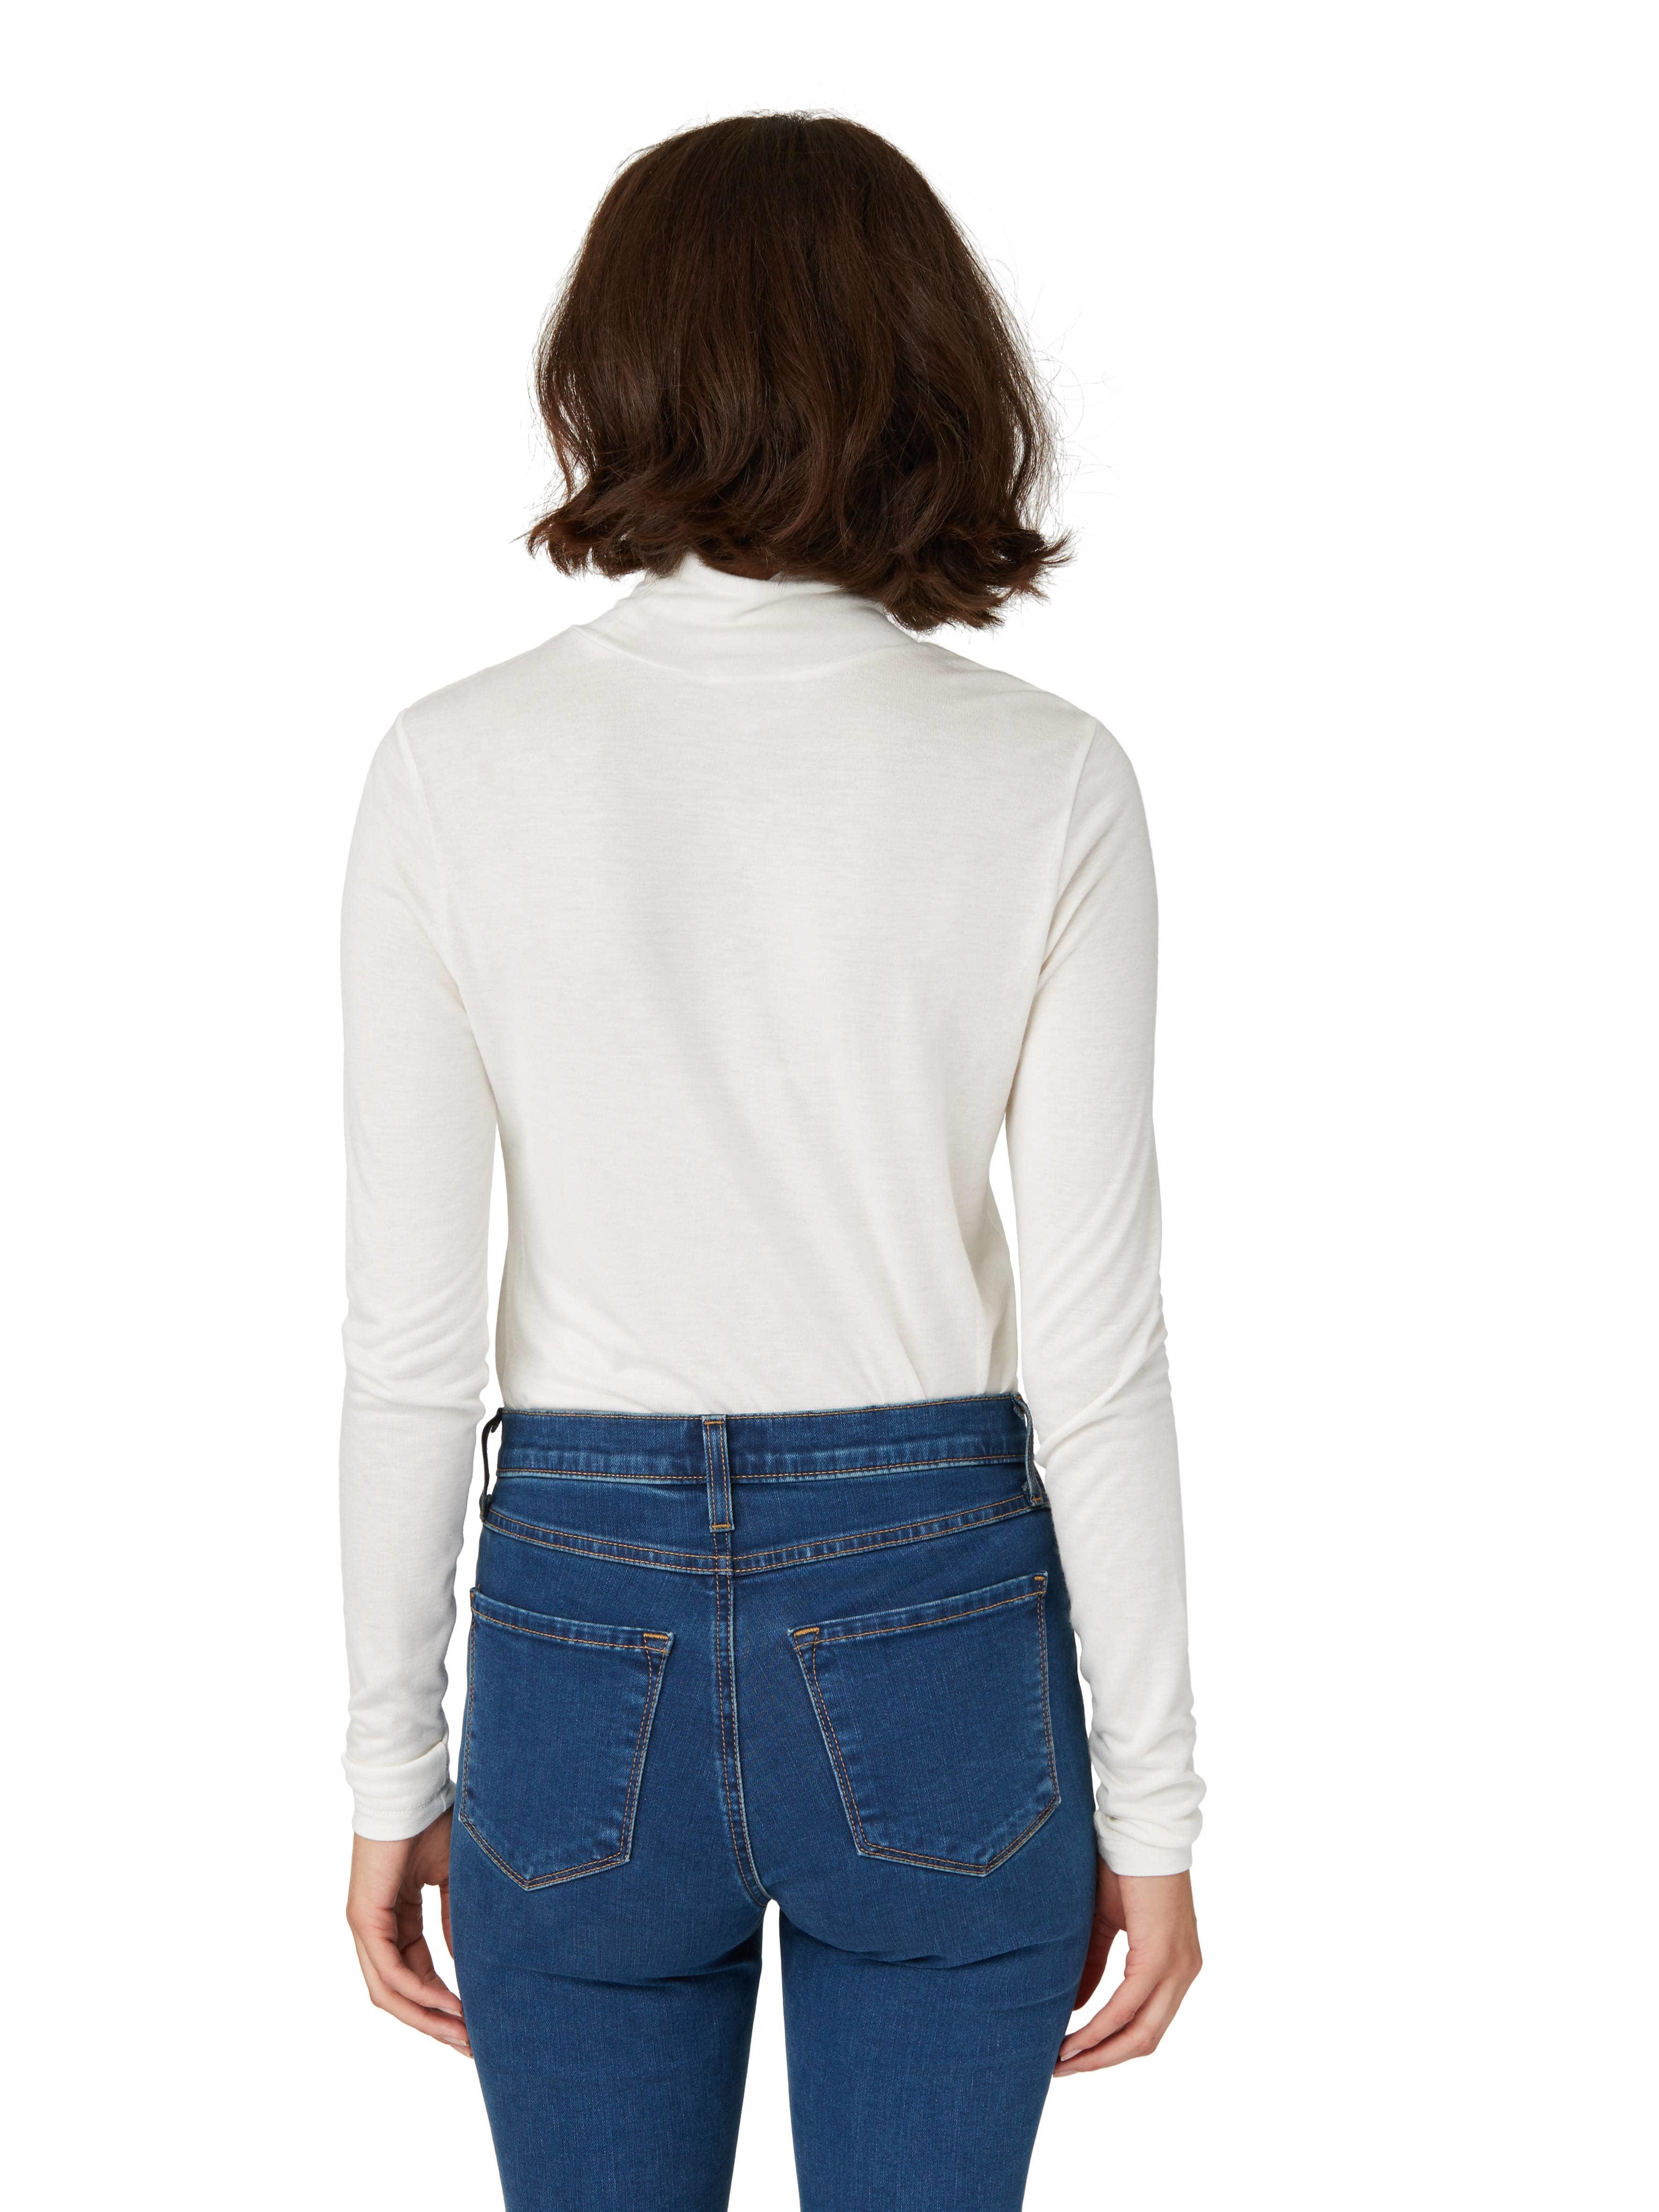 Frank oak the alex turtleneck in snow white in white lyst for Frank and oak shirt